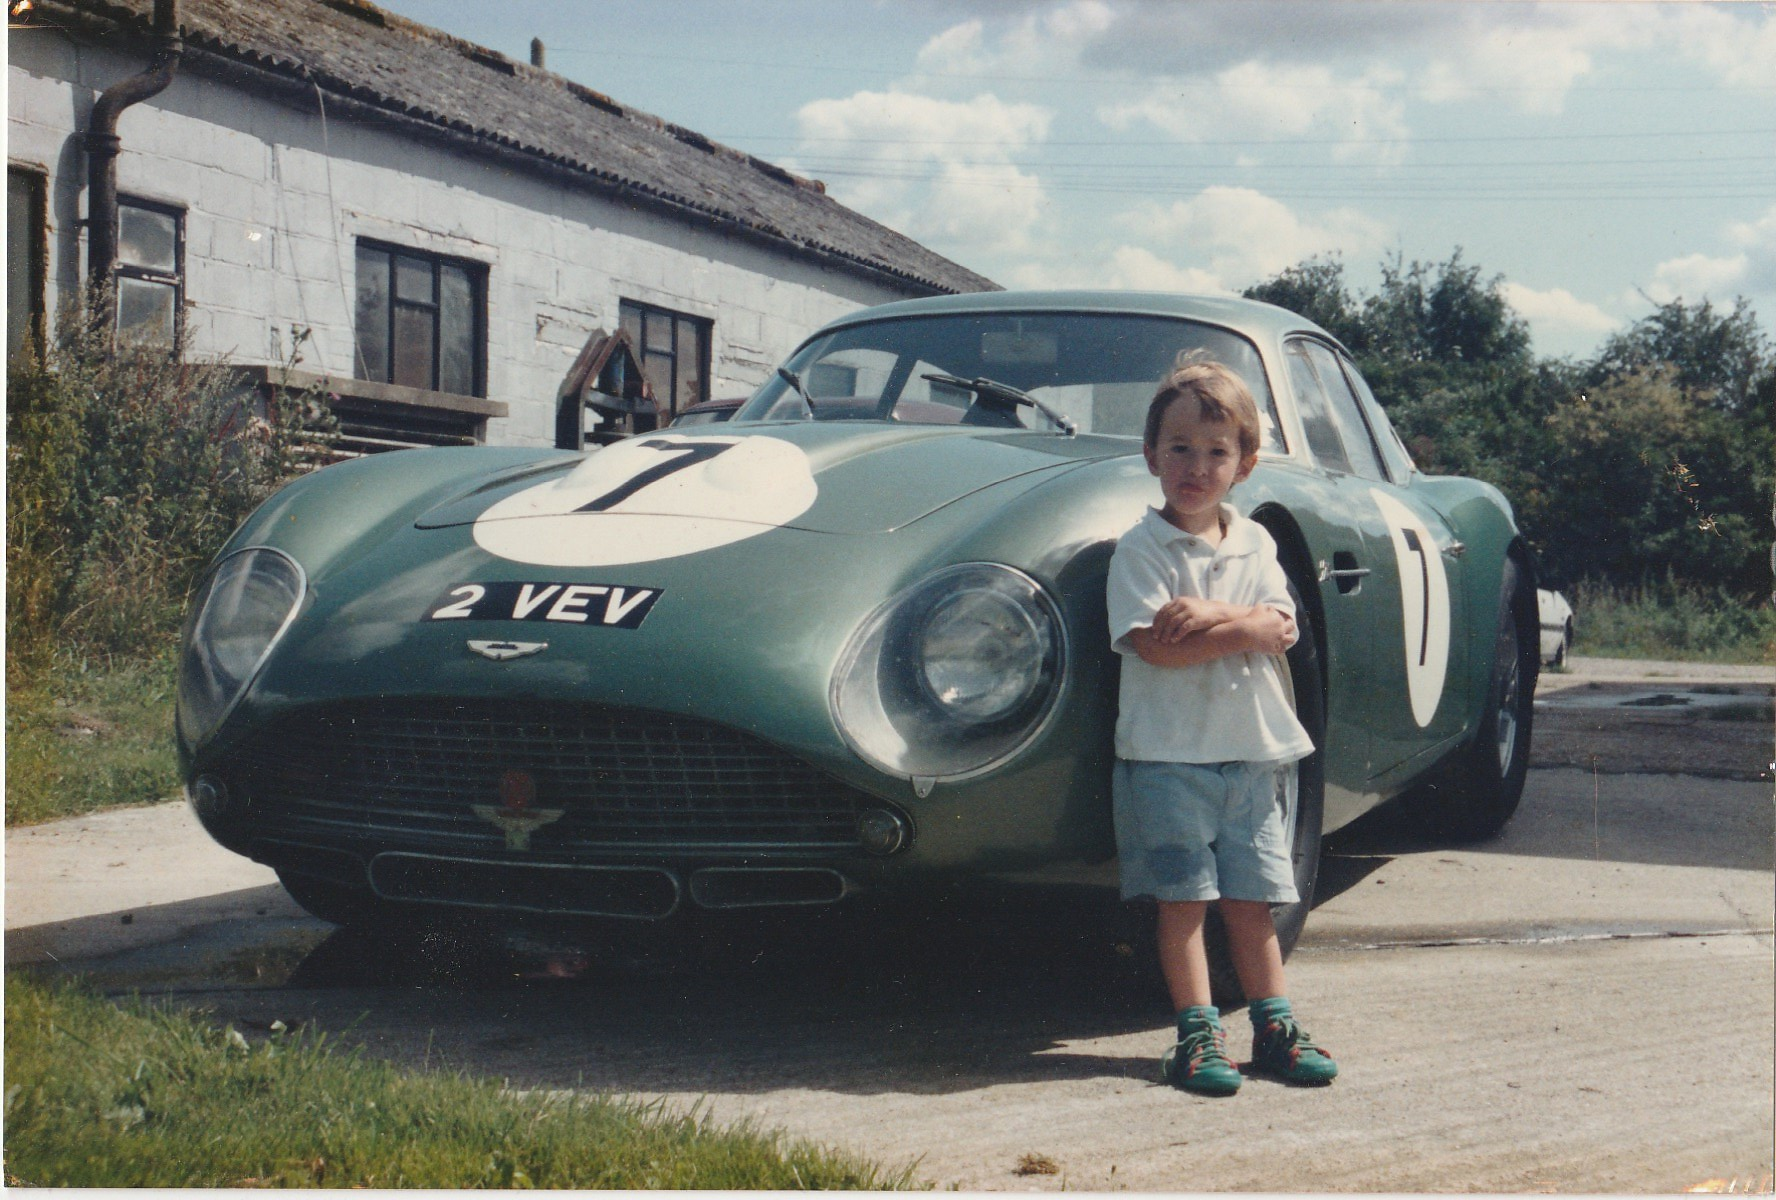 Andrew English's son with the Aston Martin DB4GT 2VEV